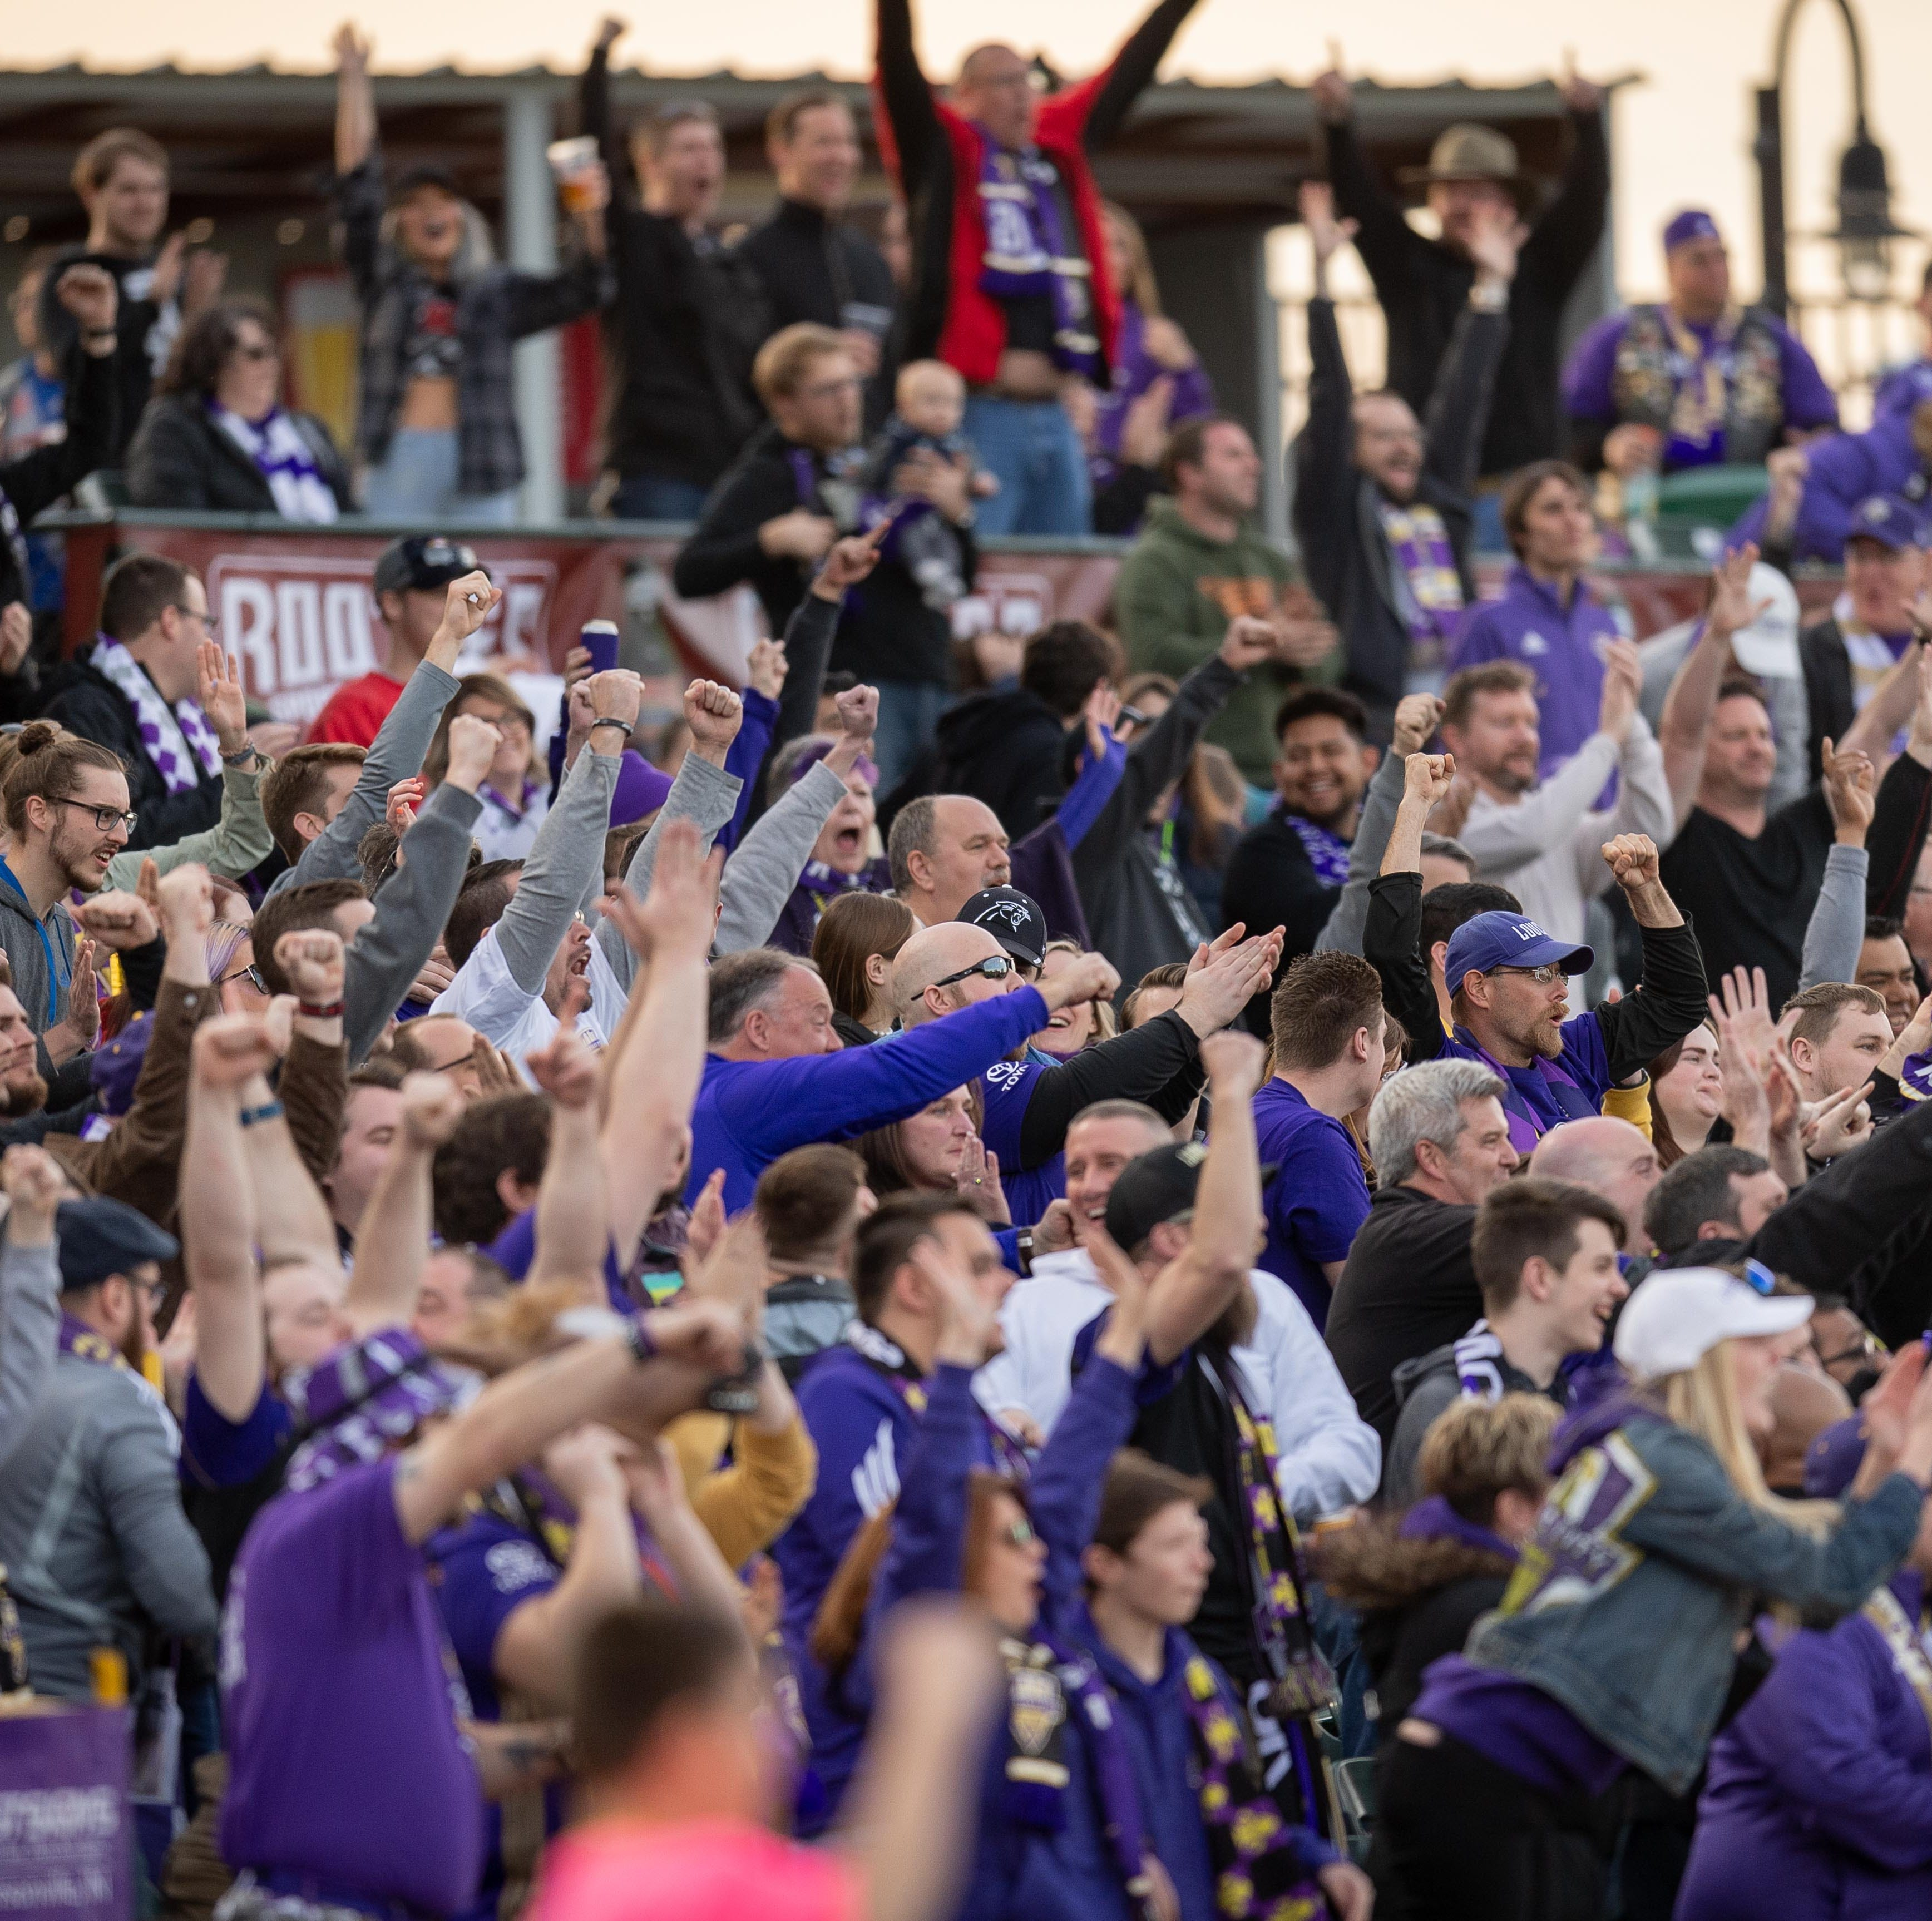 Louisville City FC's Chick-fil-A promotion is still a spicy topic among fans and officials